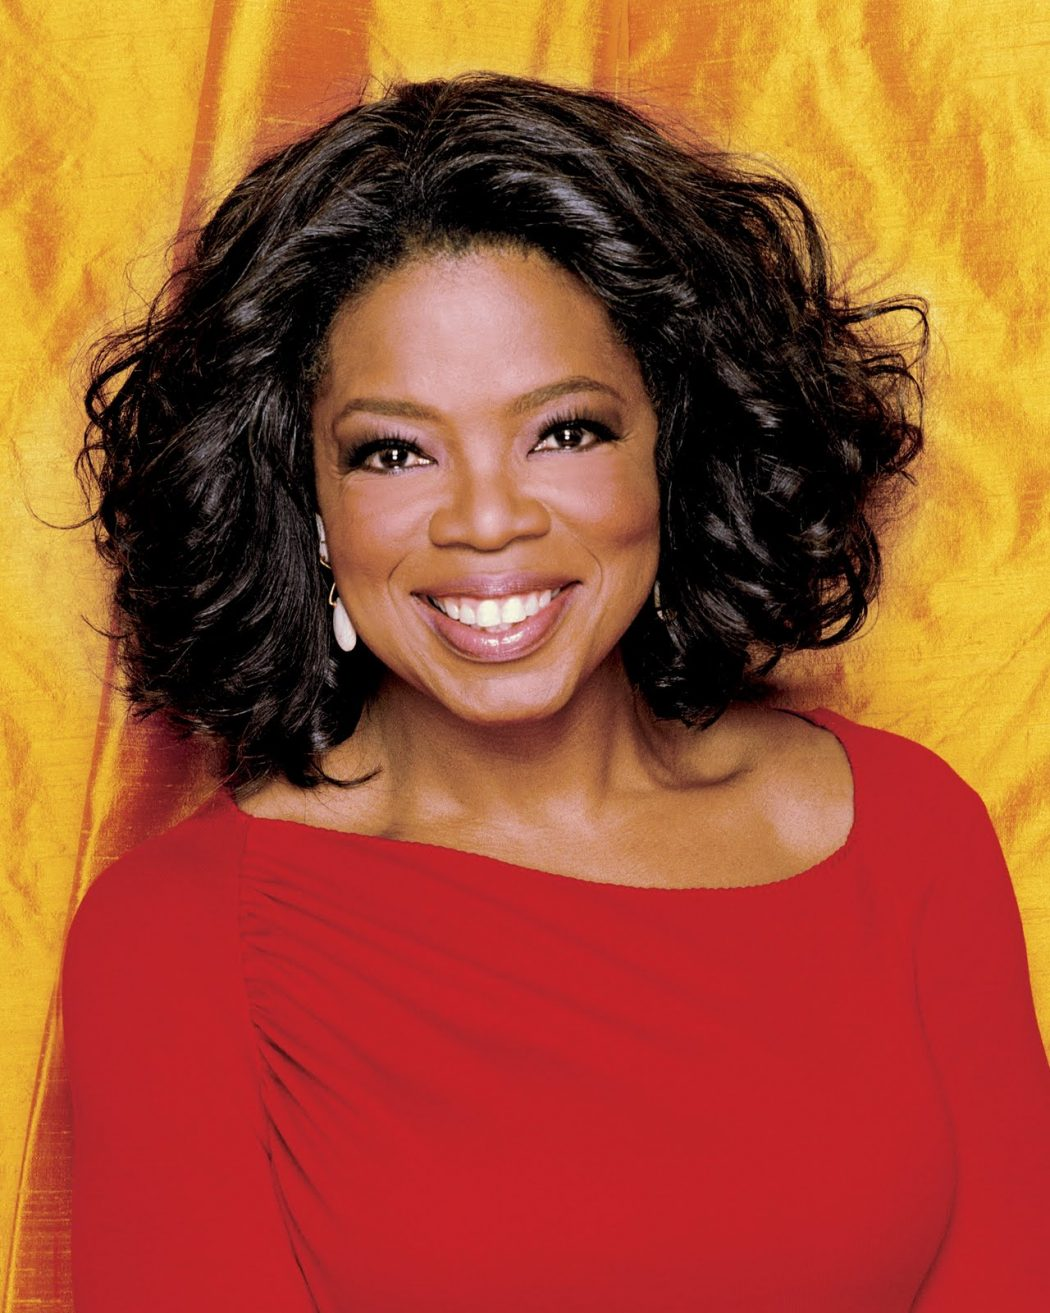 oprahwinfrey_2005 Top 10 Most Effective Persons in the World